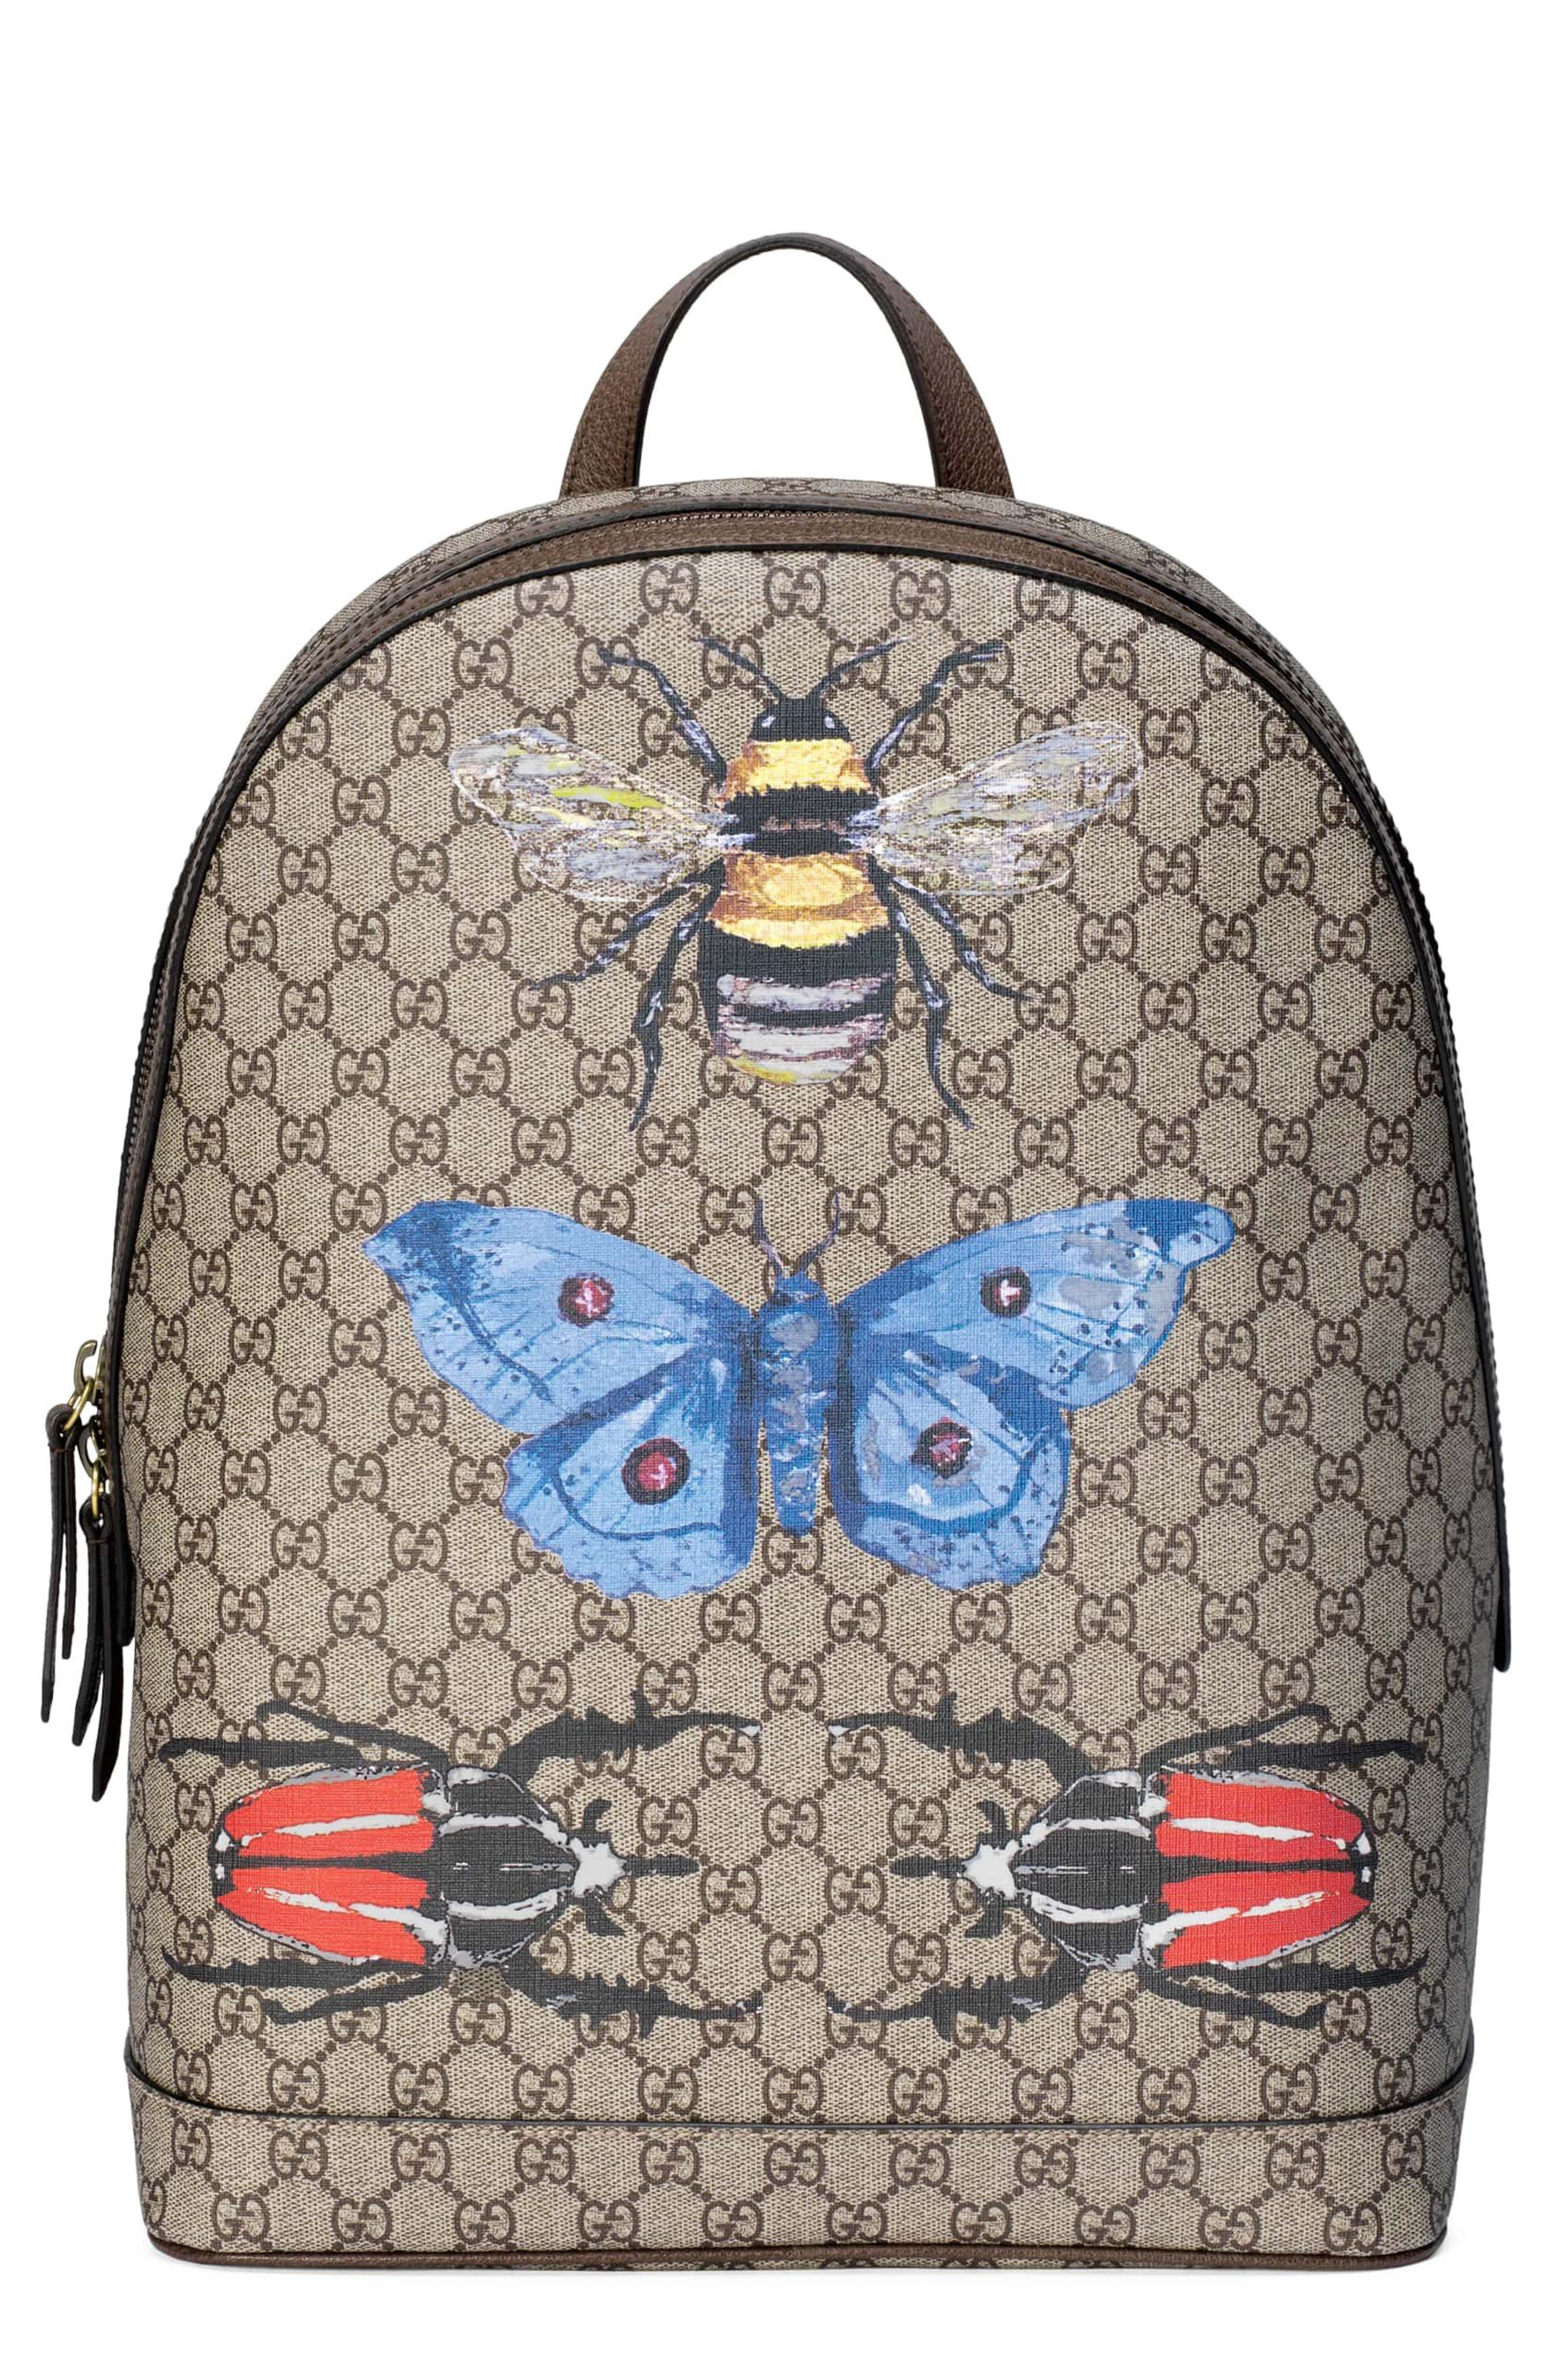 Alternate Image 1 Selected - Gucci Insect Print GG Supreme Canvas Backpack